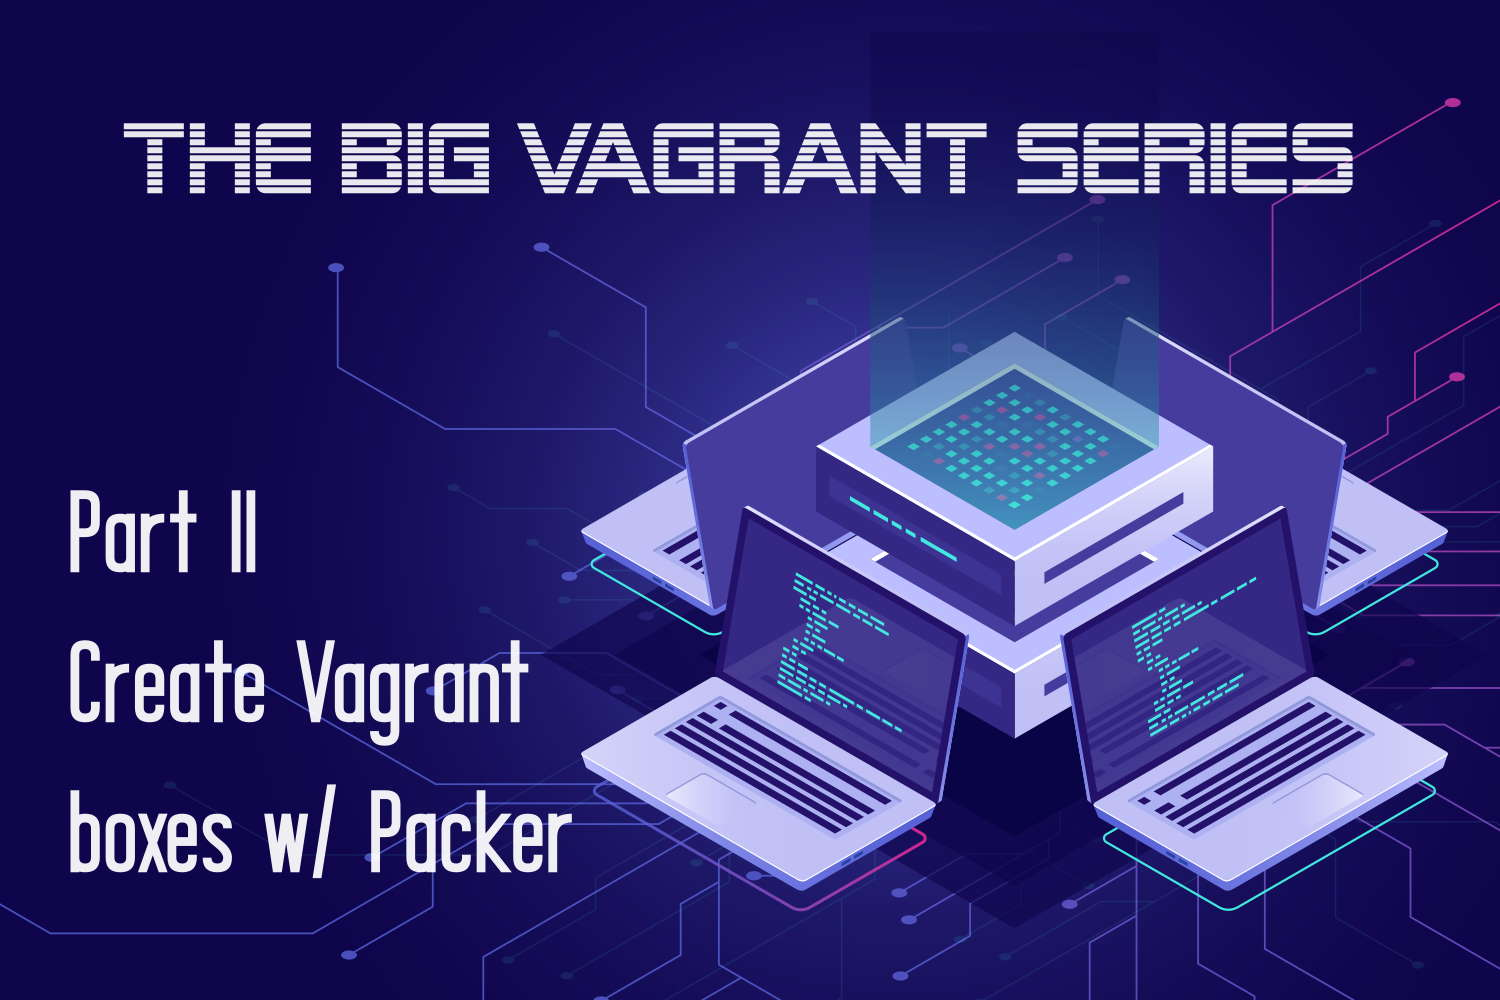 Create a Vagrant box with Packer